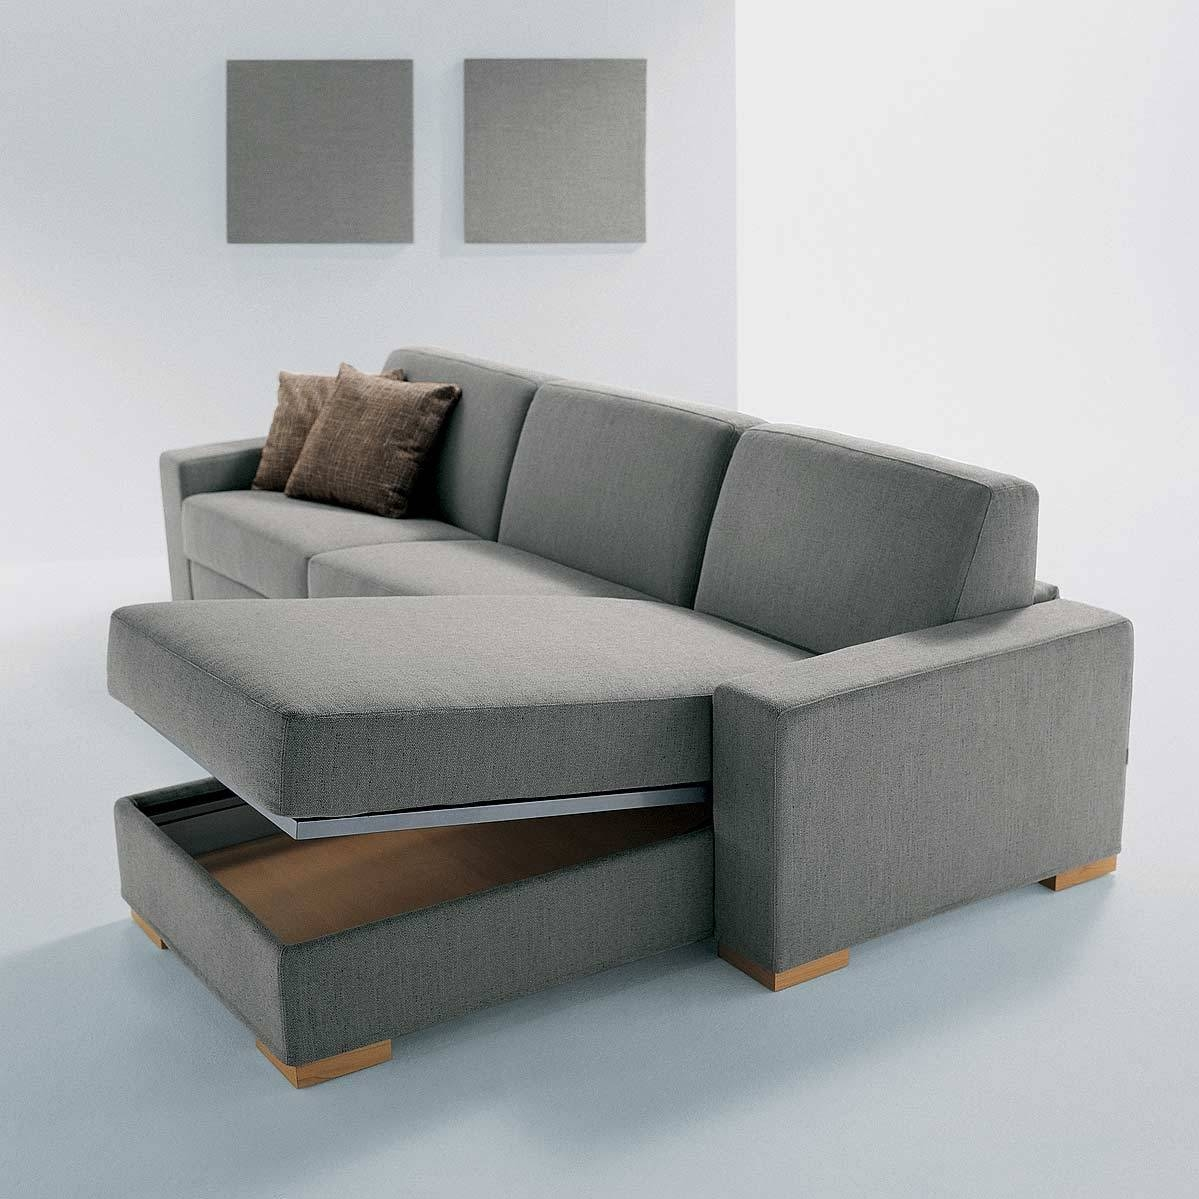 Csl Sofa Beds for Luxury Sofa Beds (Image 3 of 30)